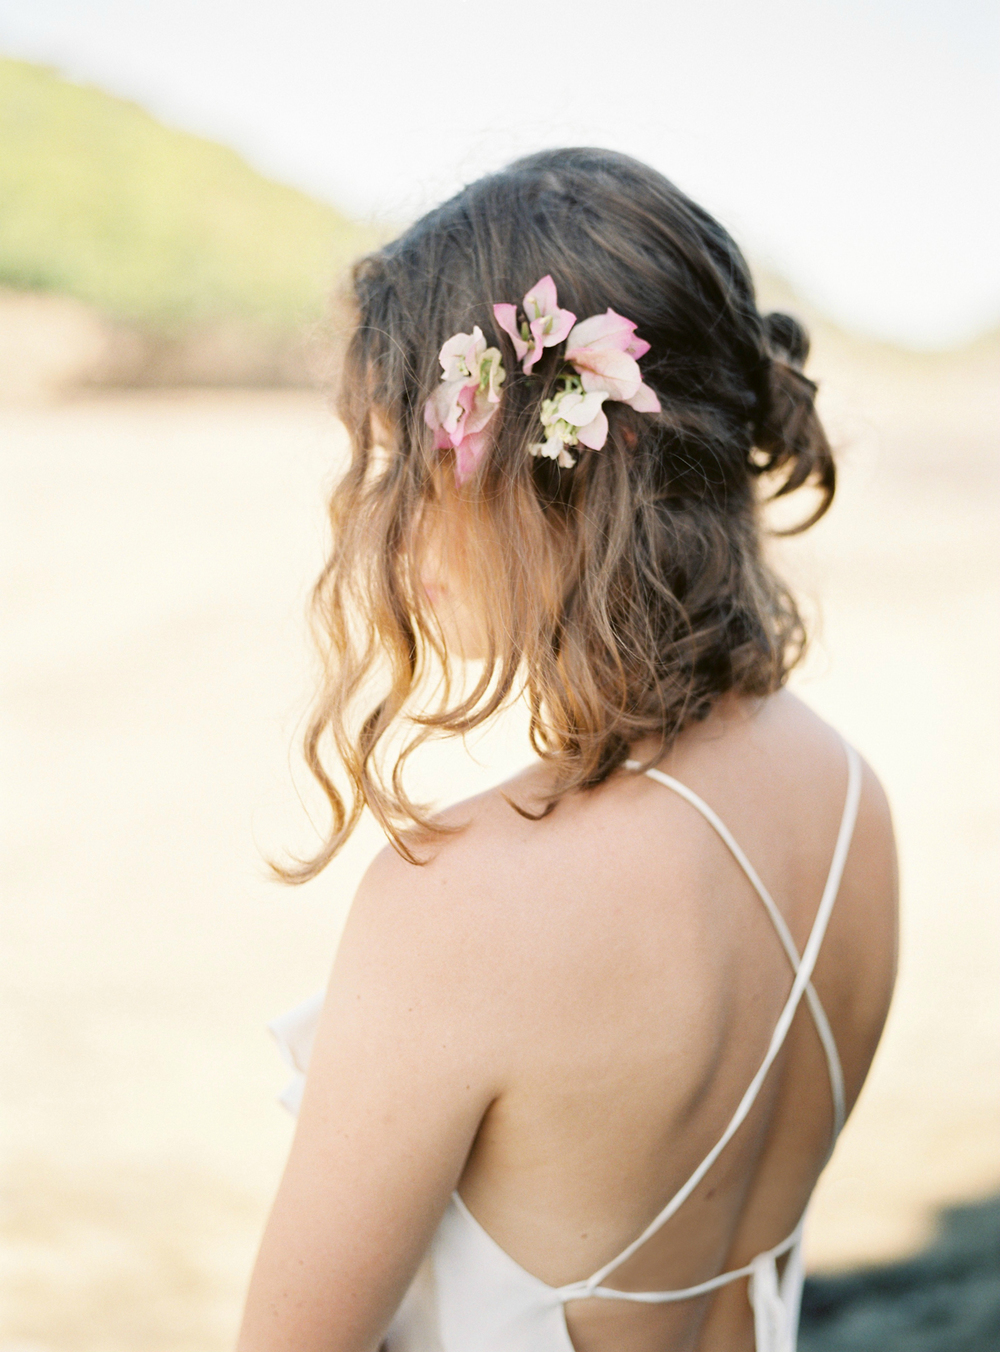 Simple organic wedding hair for beach wedding